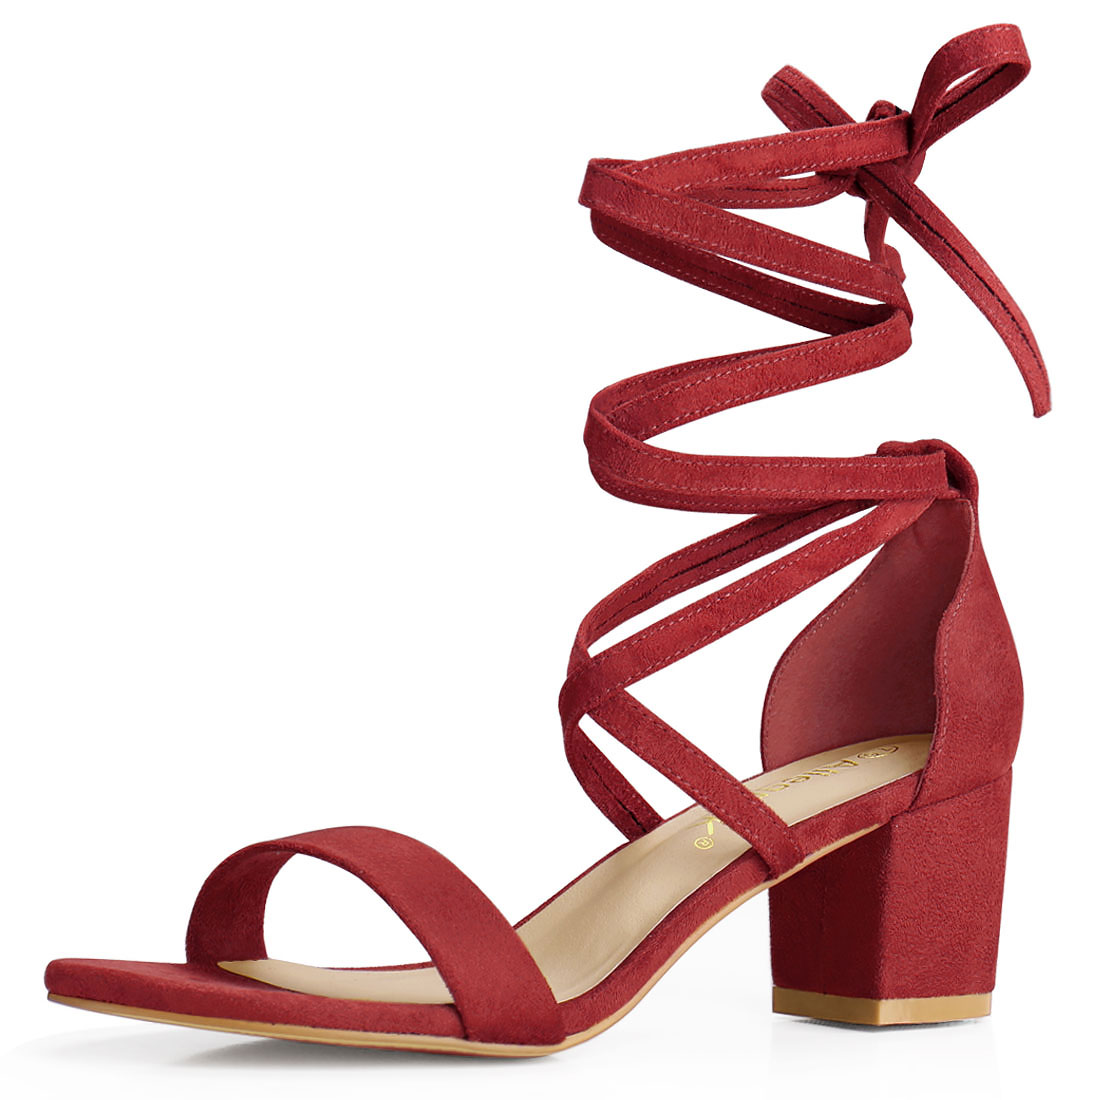 Allegra K Women's Lace Up Mid Chunky Heeled Sandals Red-Faux Suede US 7.5